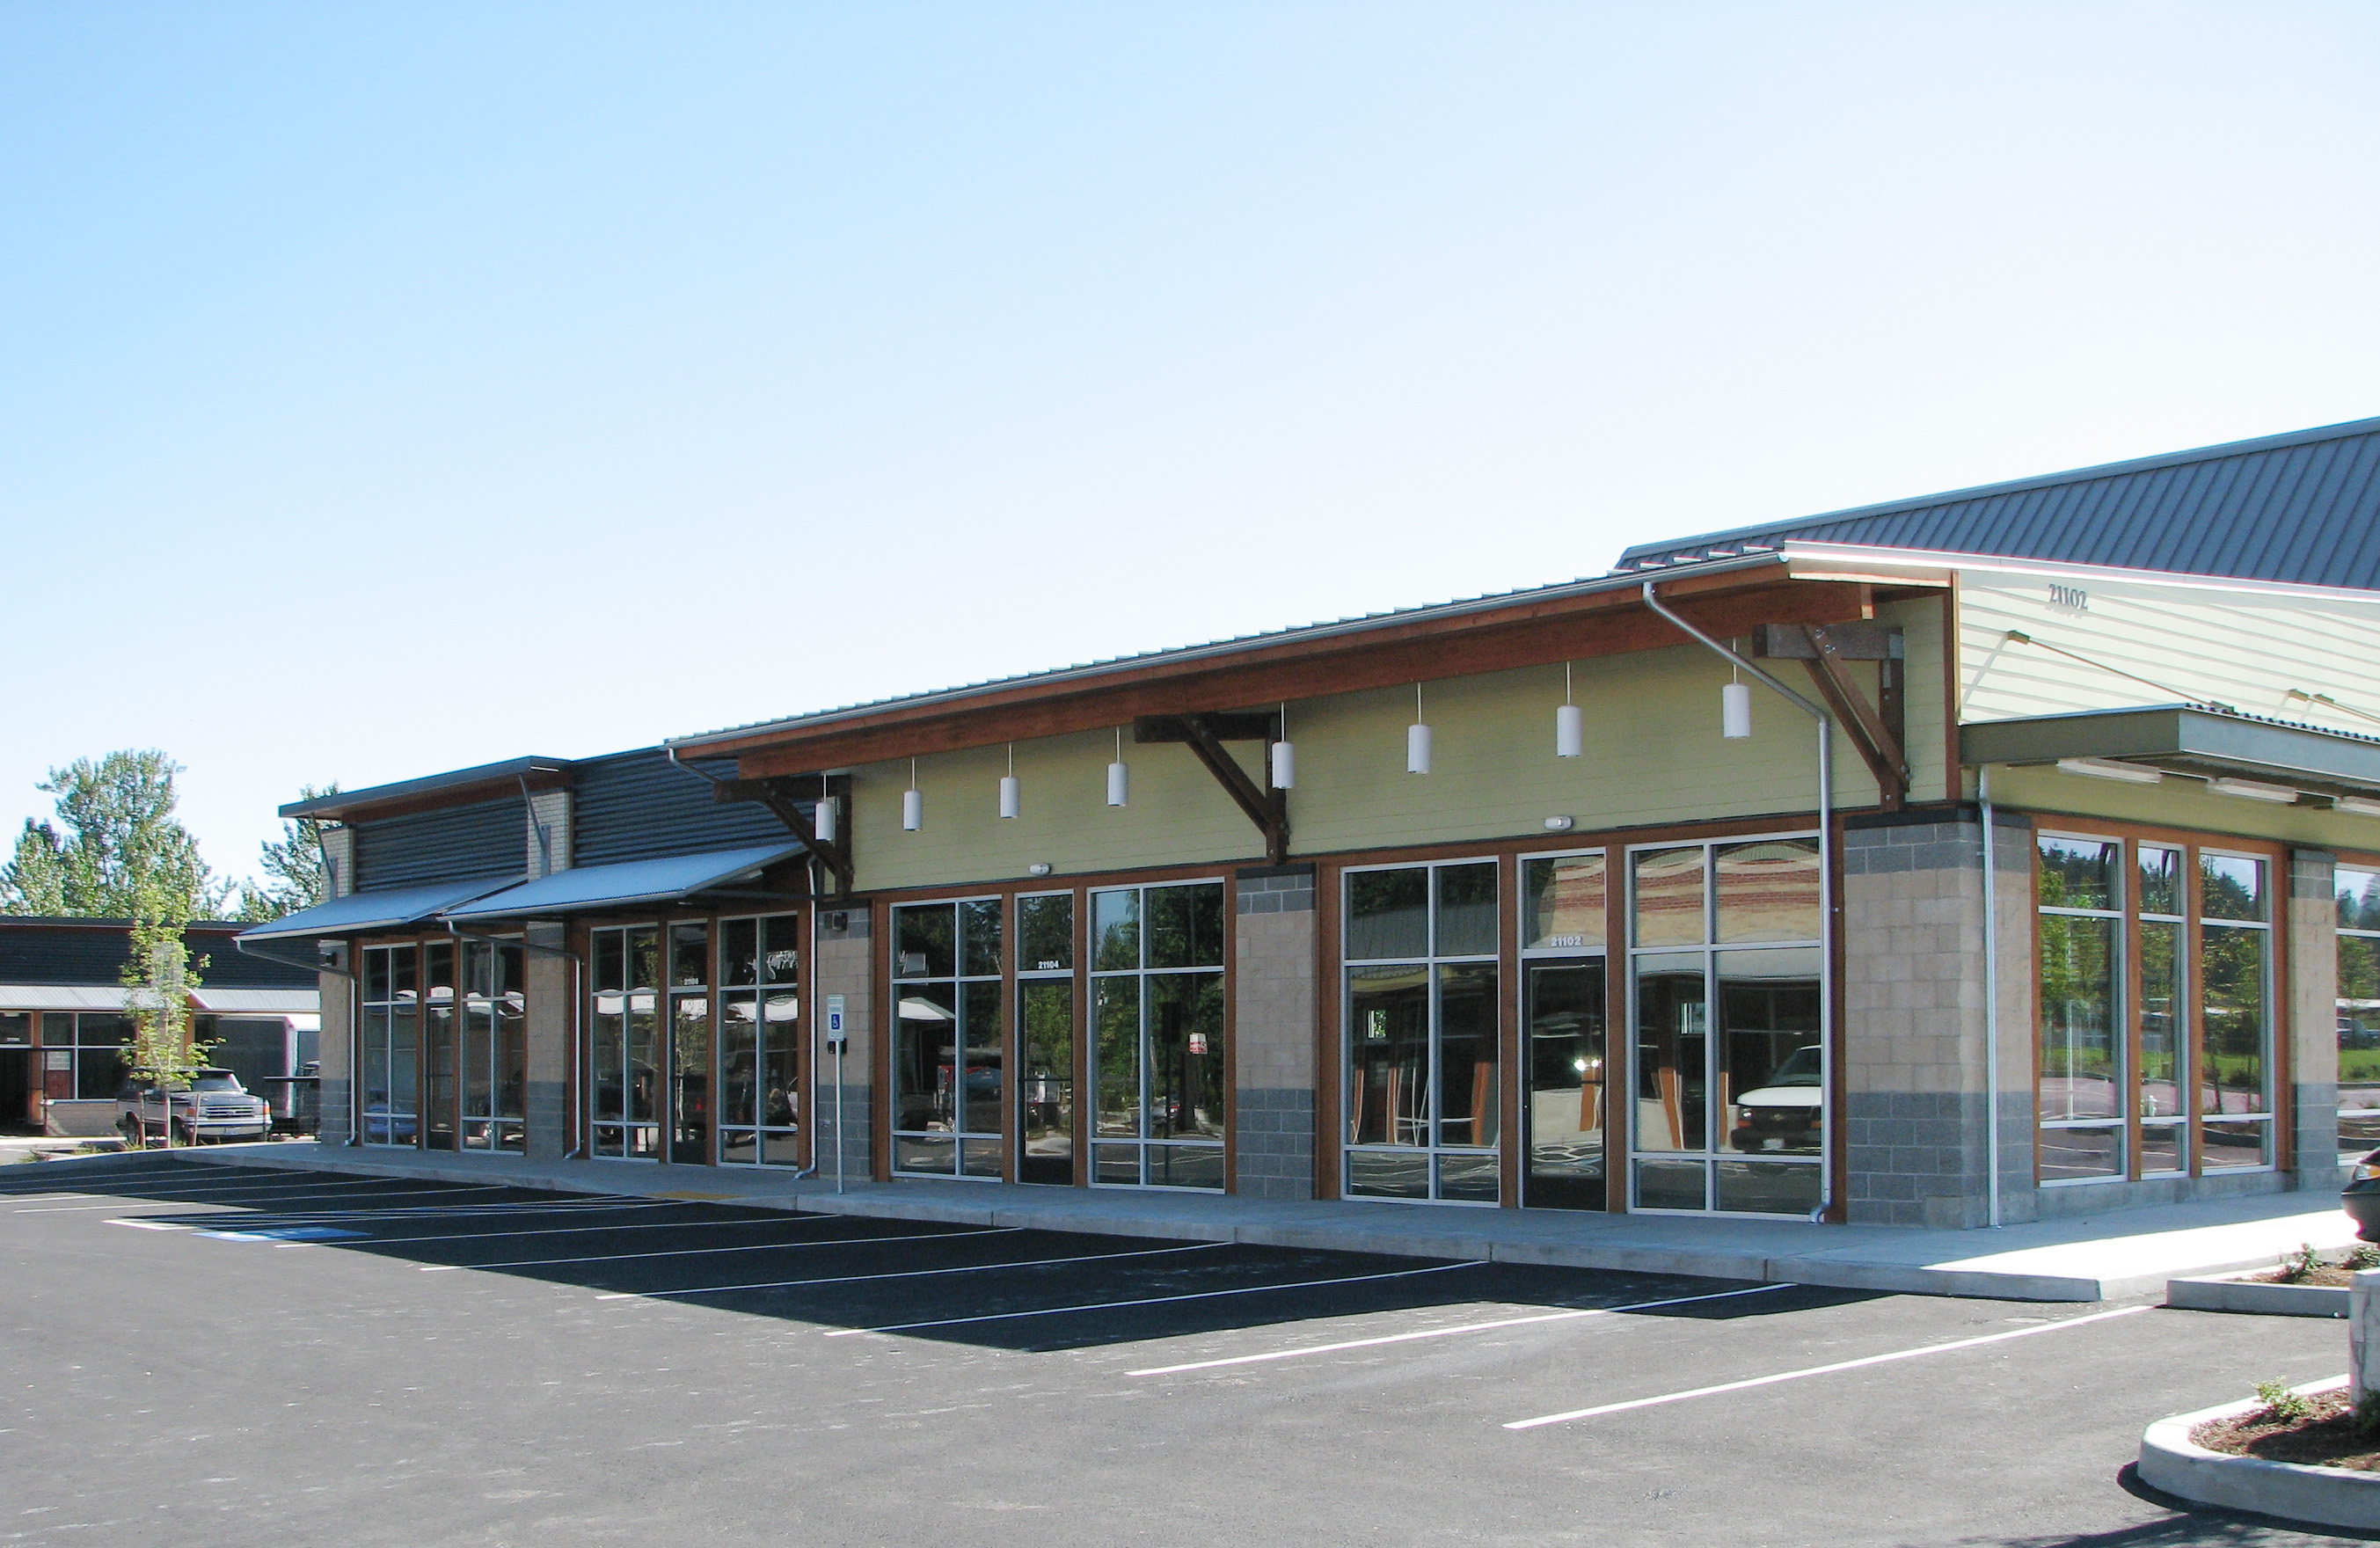 Retail buildings phase 2 by kyle christensen at for Retail building plans